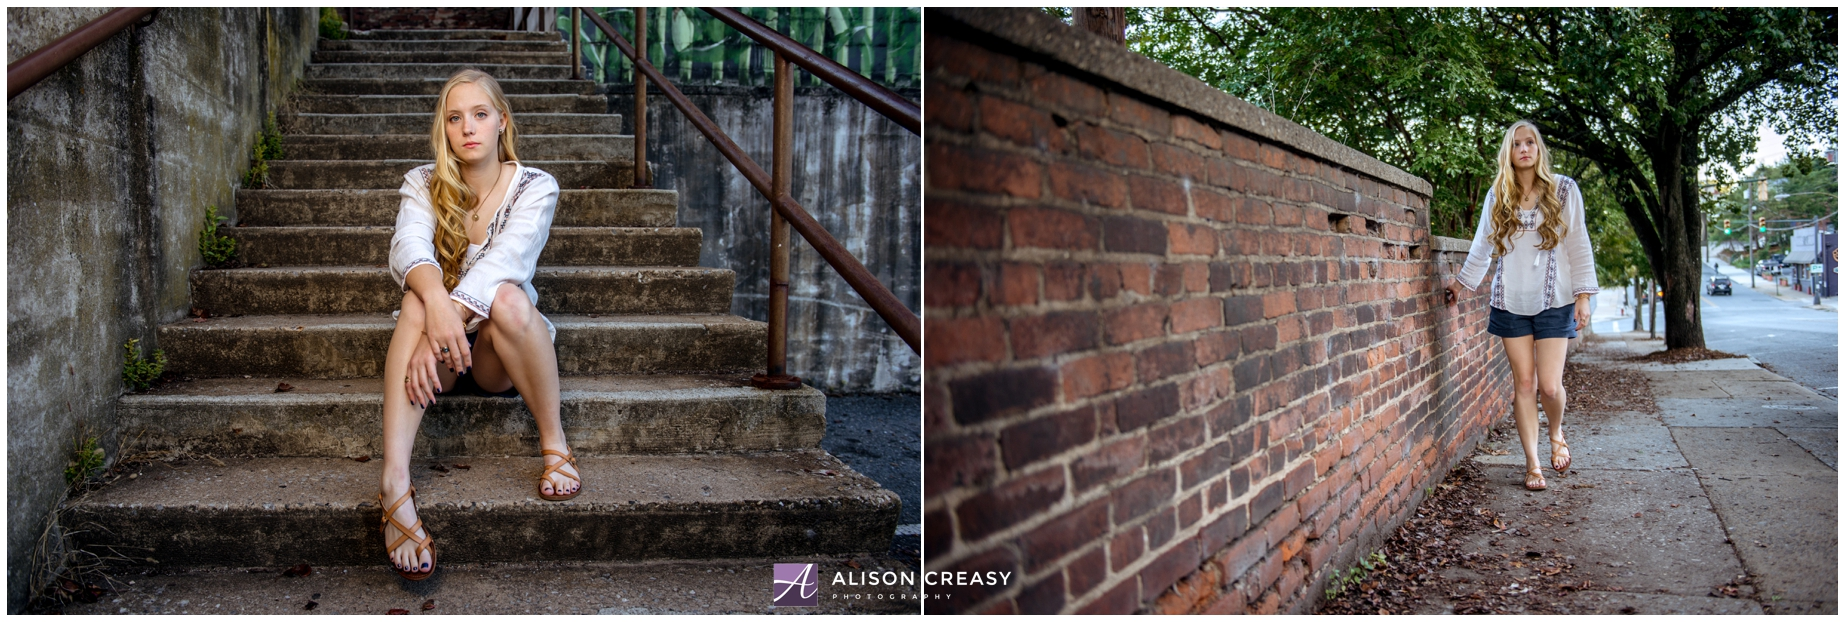 Alison-Creasy-Photography-Lynchburg-VA-Photographer_0981.jpg